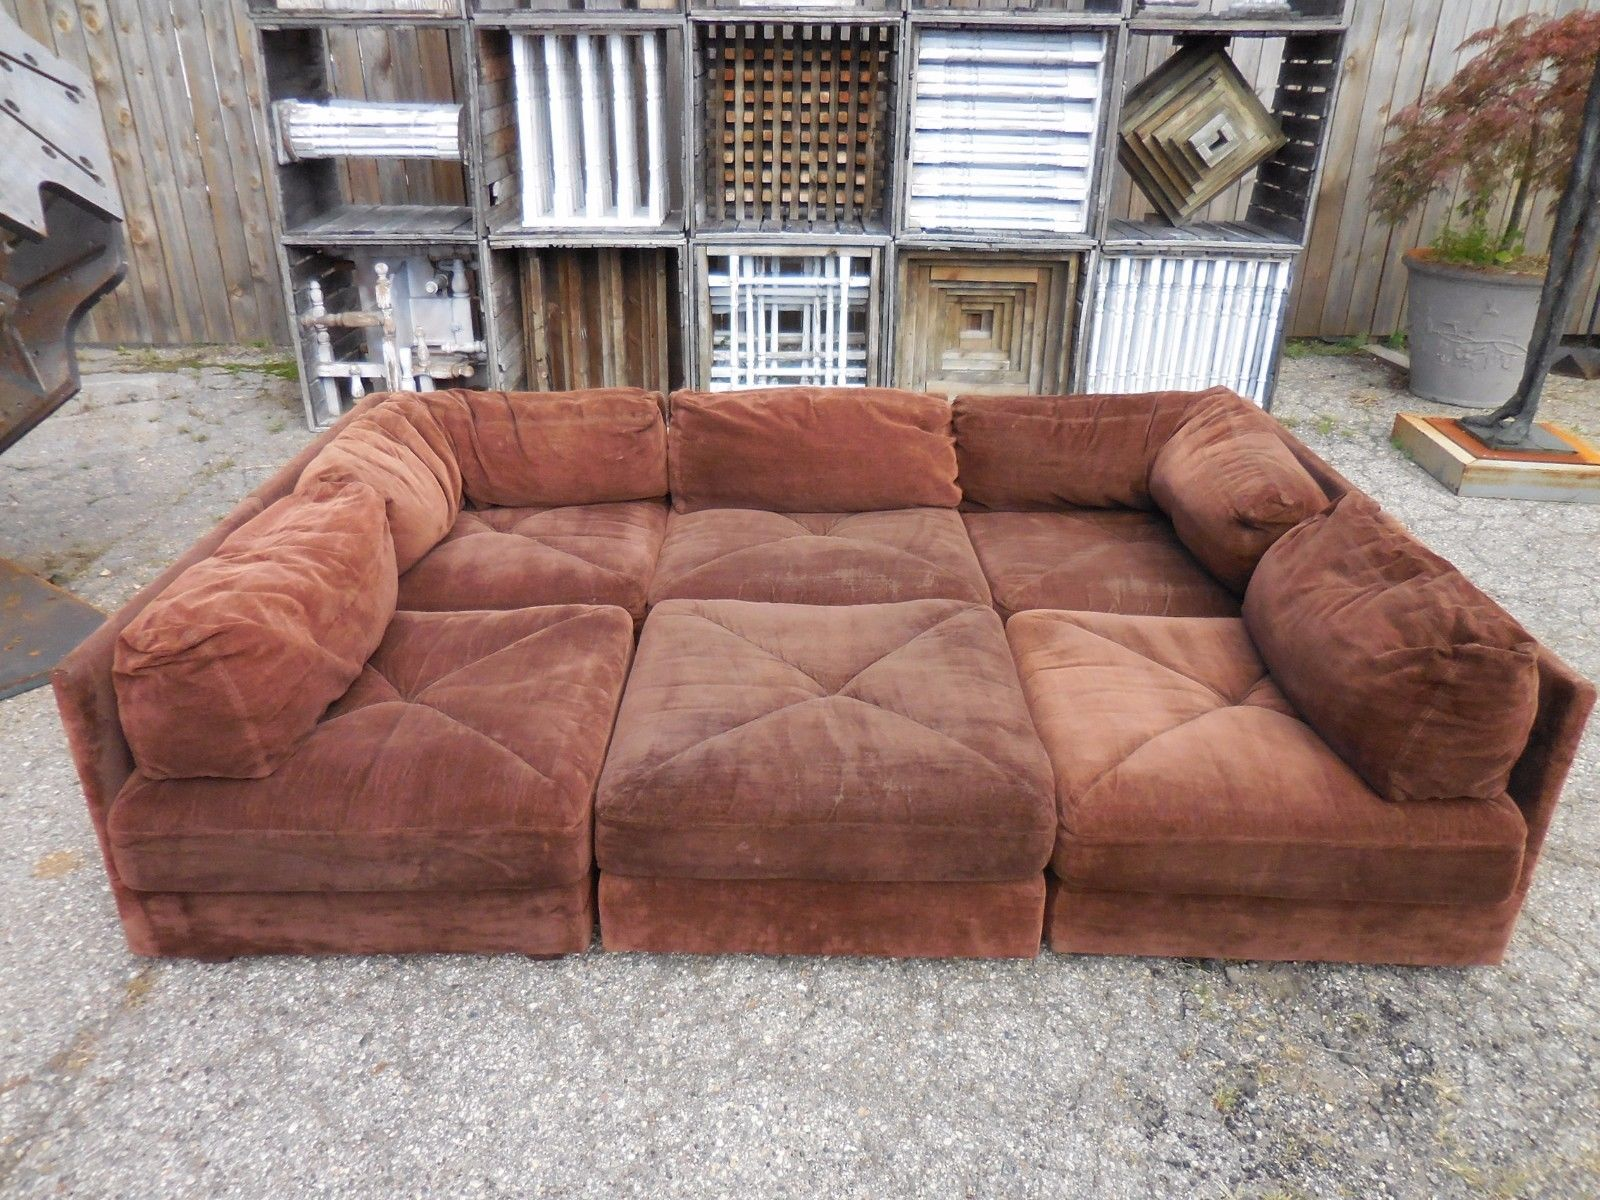 Couch Gross 70s Gross Pit Sectional Sofa Laurel Home